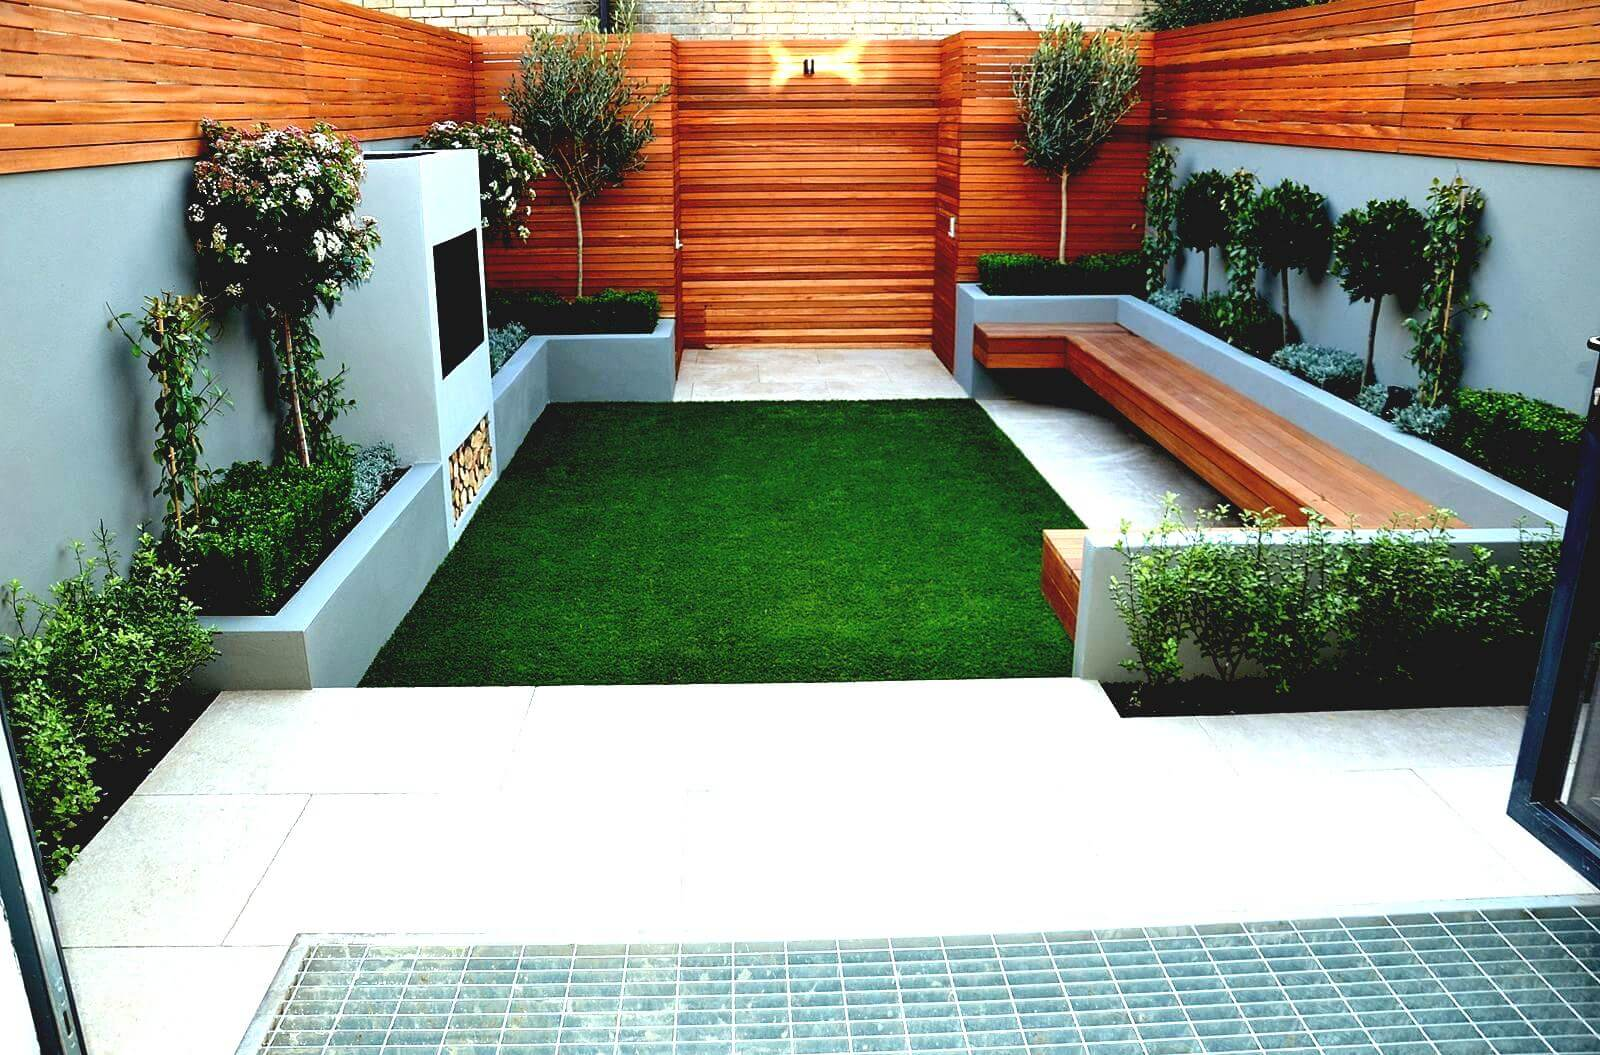 50 Best Front Garden Design Ideas in UK - Home Decor Ideas UK on Landscape Design Ideas  id=72748